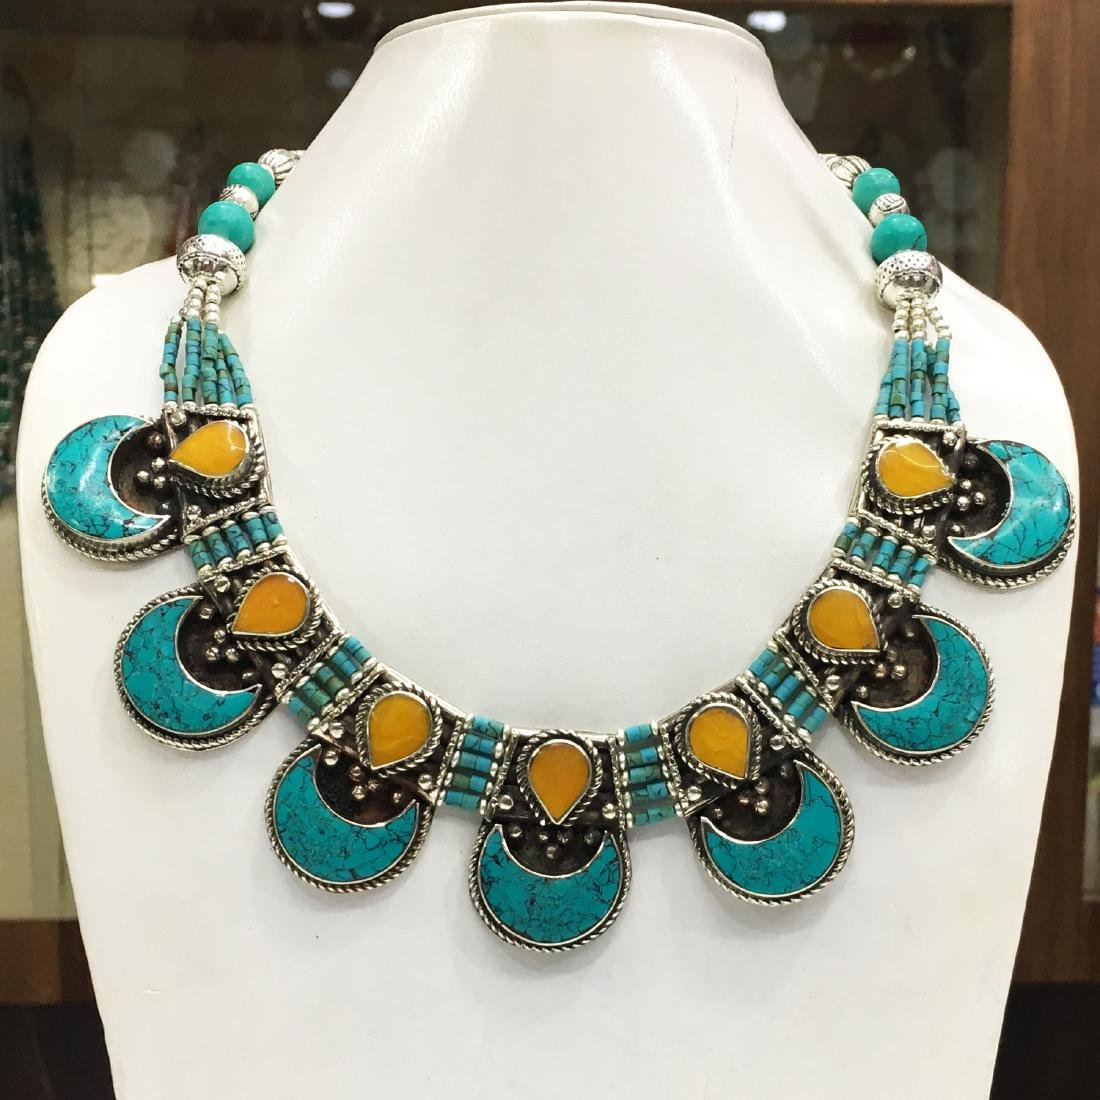 Gypsy Tibetan Designer Turquoise & Coral Long Necklace